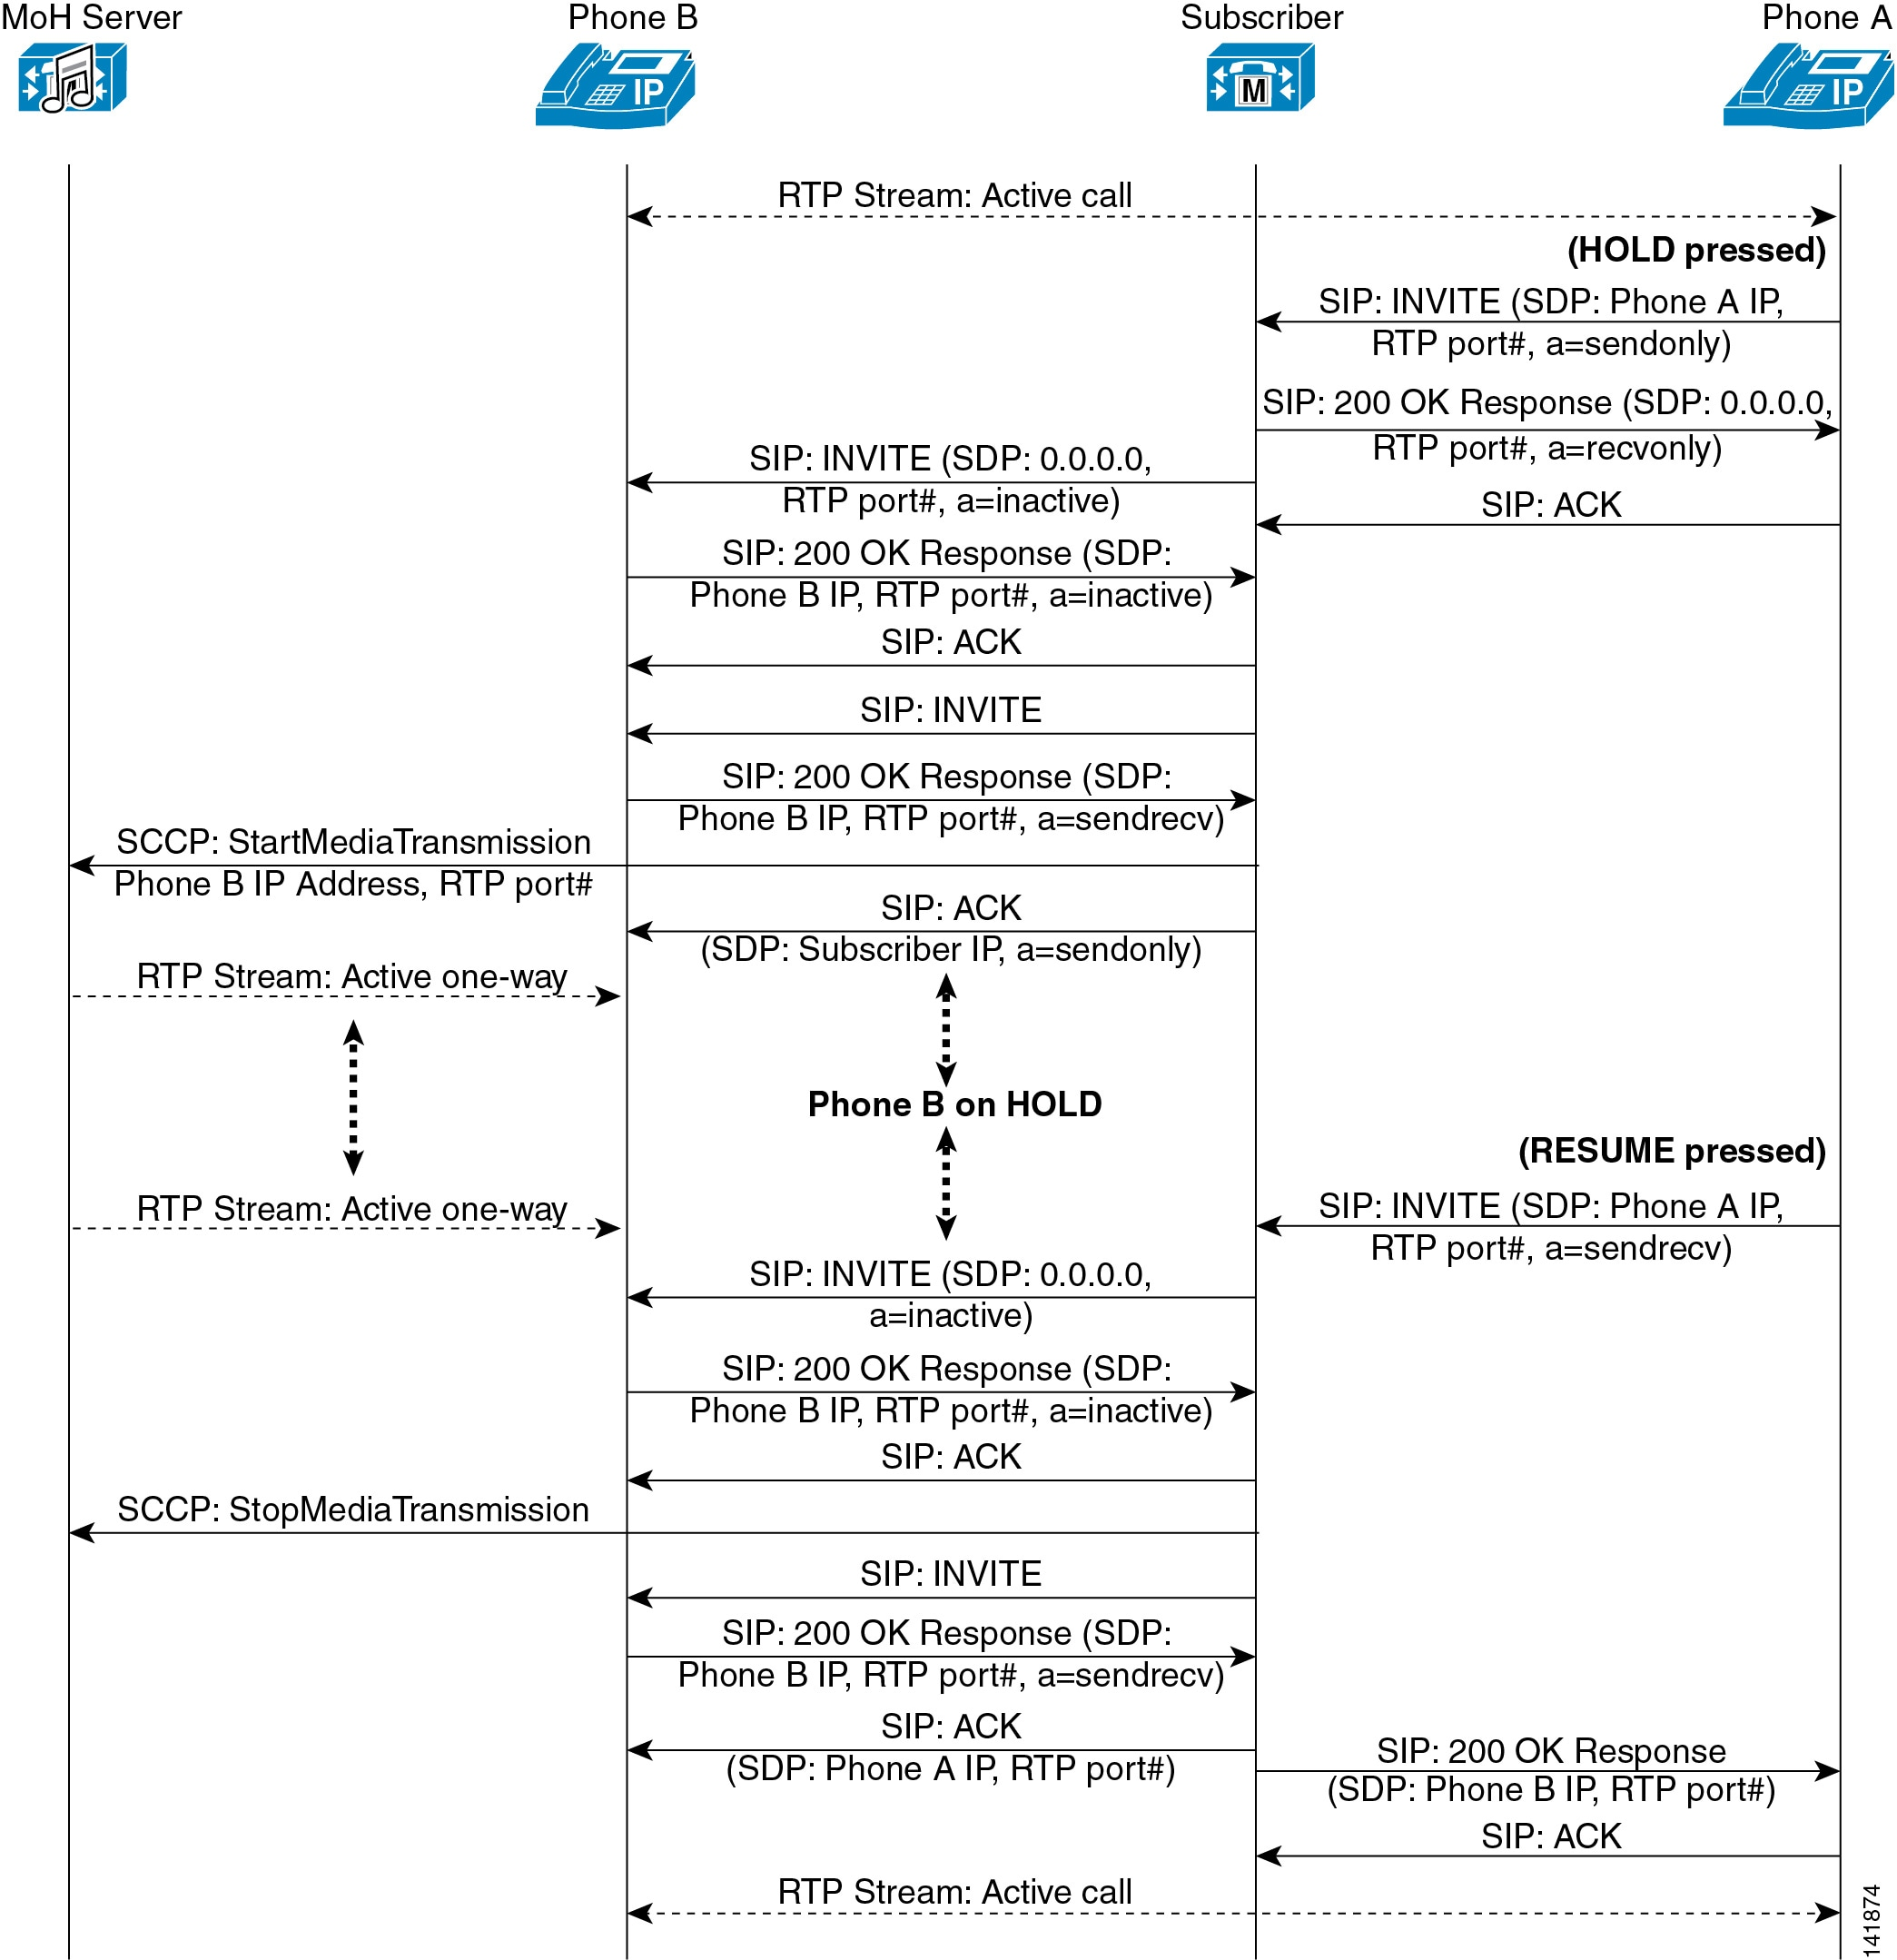 cisco resume session resume of shahzad uc engineer evoip